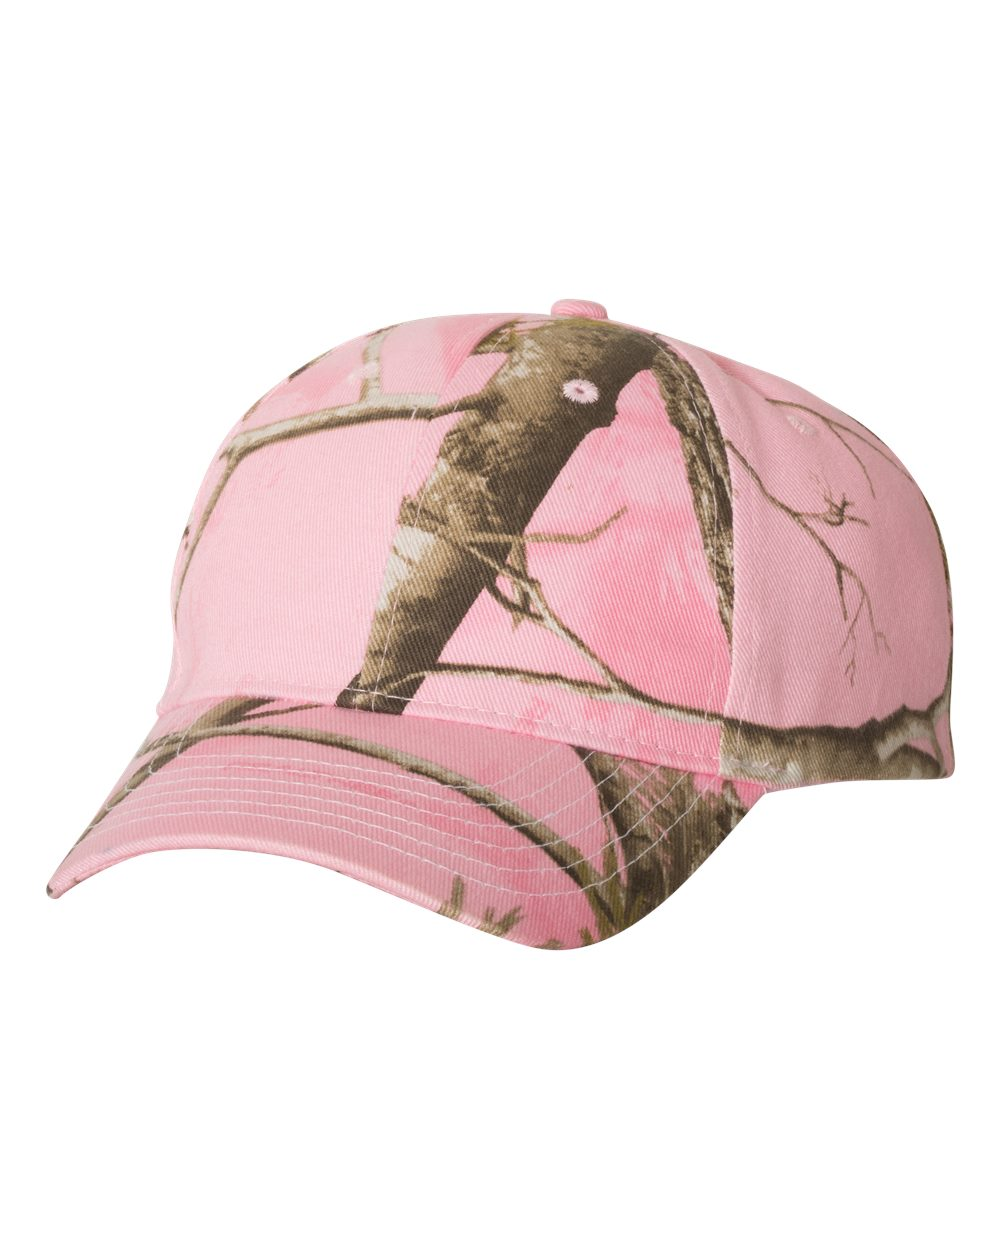 click to view Pink Realtree AP